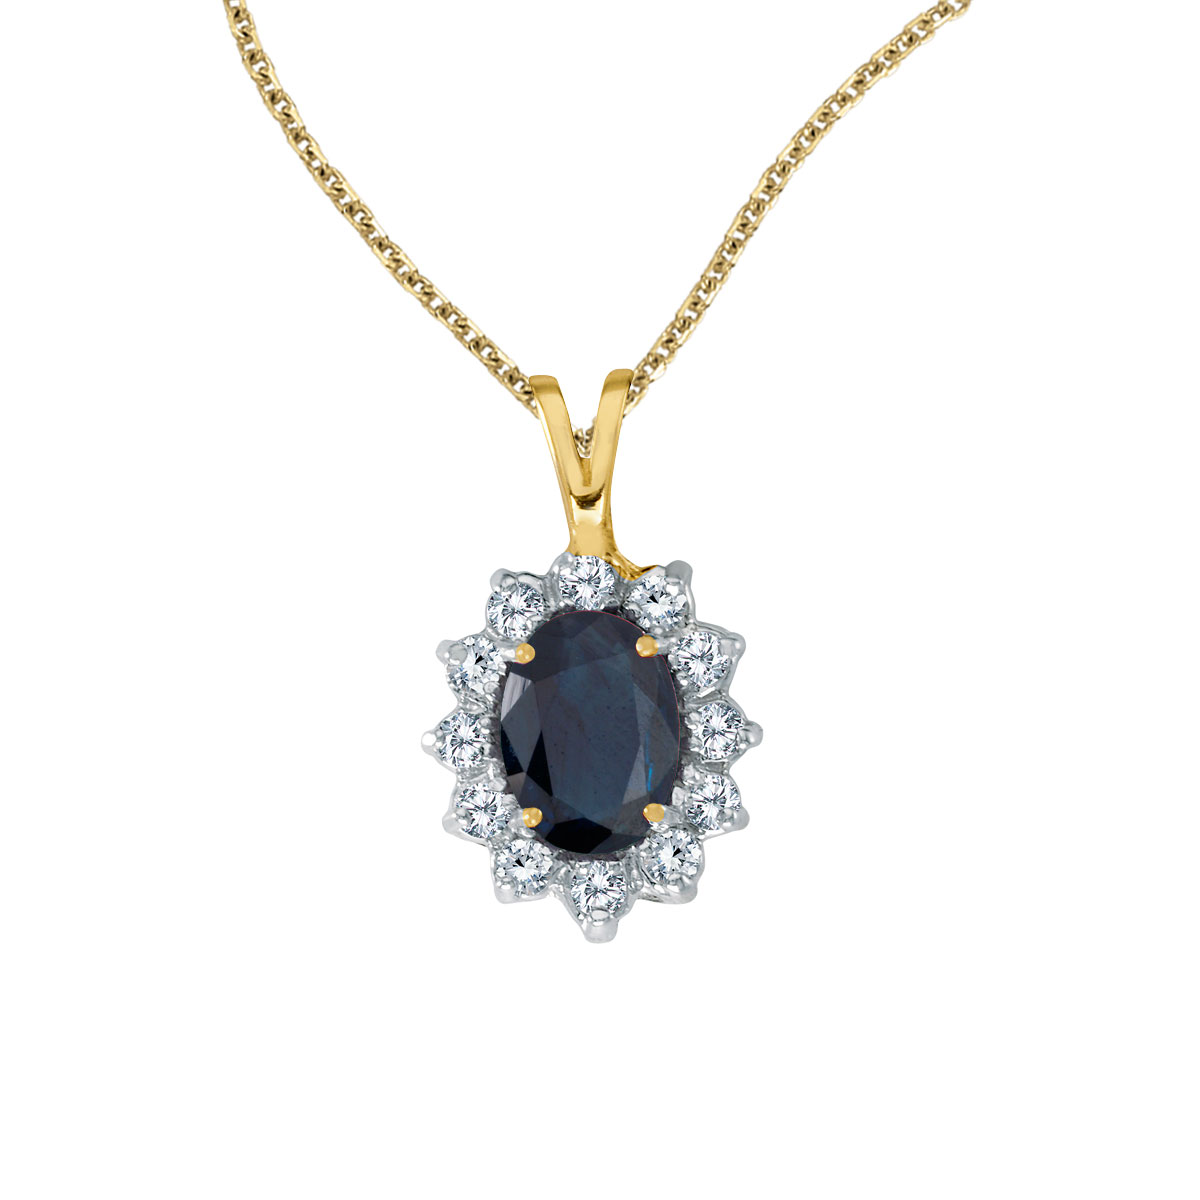 8x6 mm sapphire surrounded by .30 carats of shimmering diamonds set in 14k yellow gold. Perfect f...